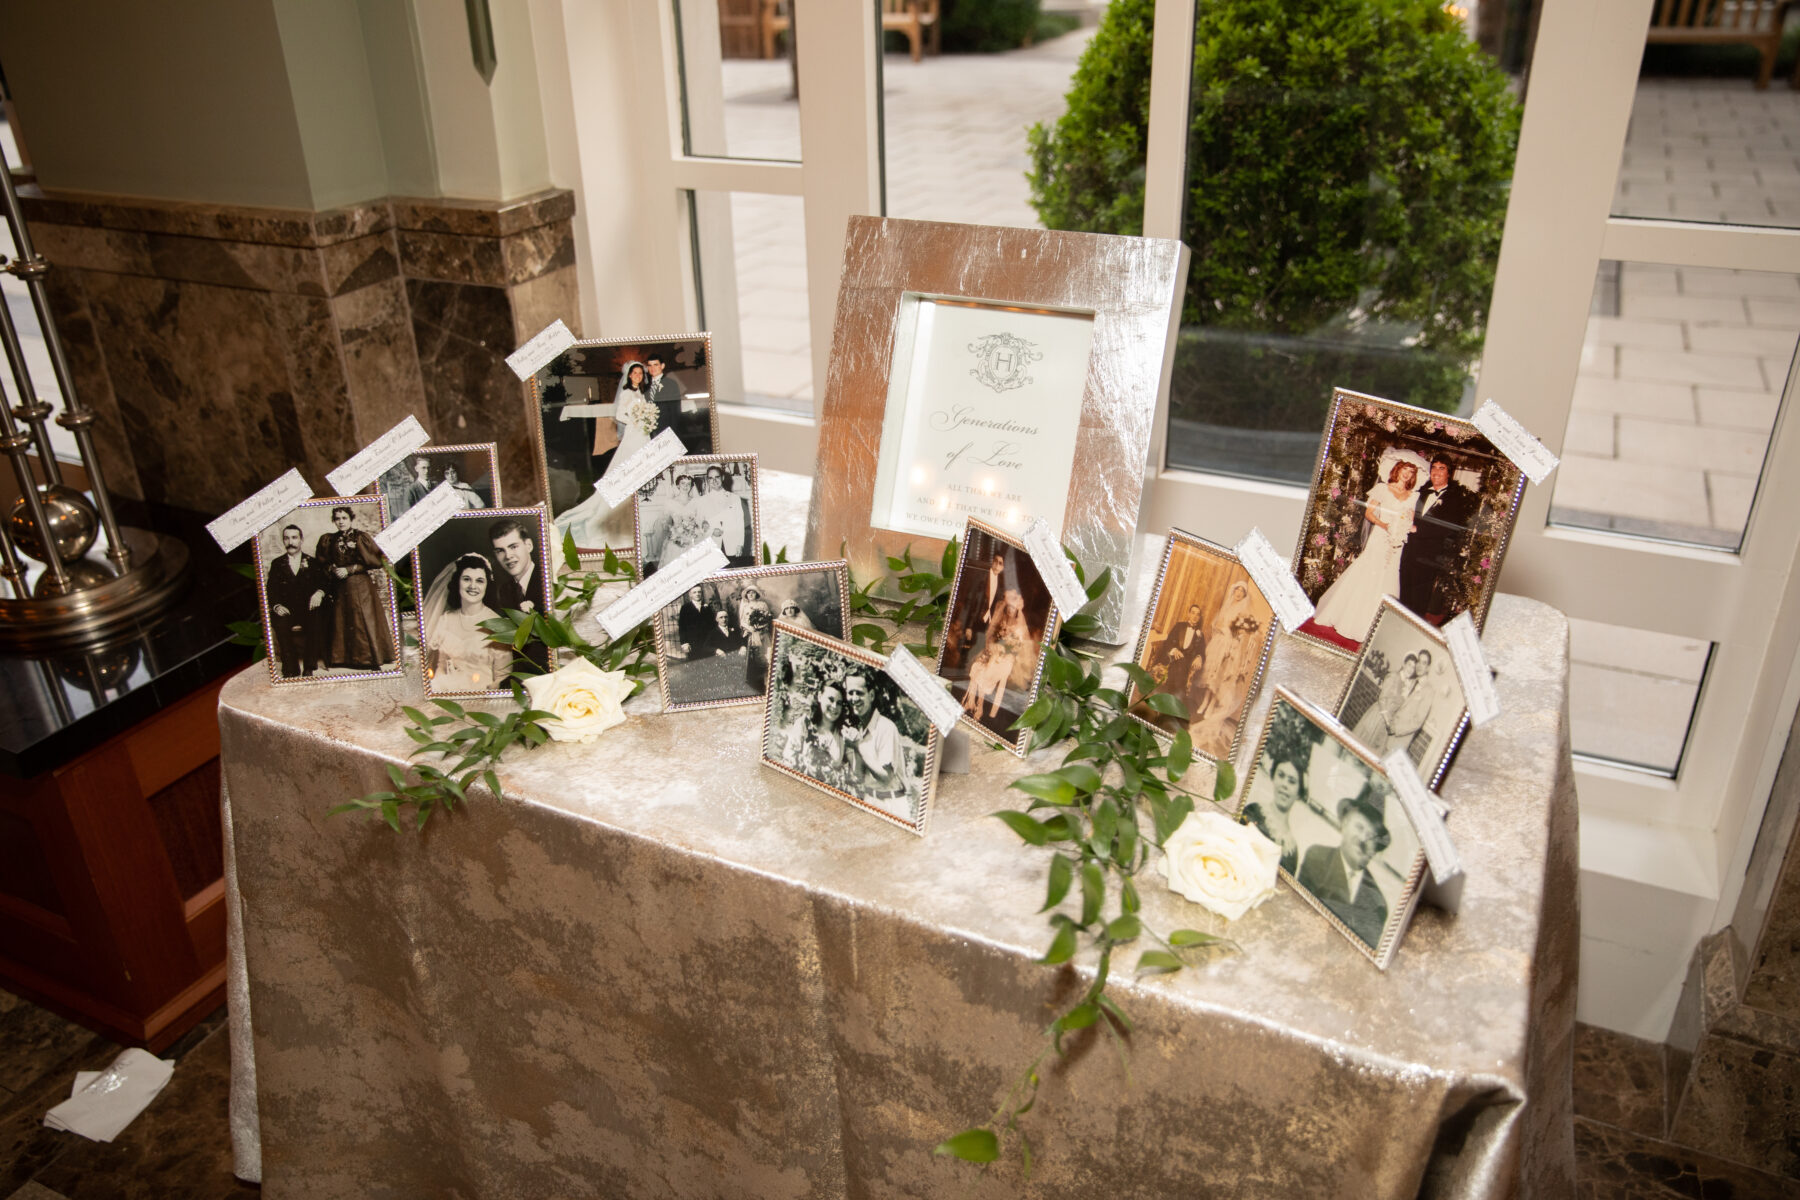 Generations of love wedding reception decor: Floral Filled Luxurious Wedding by LMA Designs featured on Nashville Bride Guide